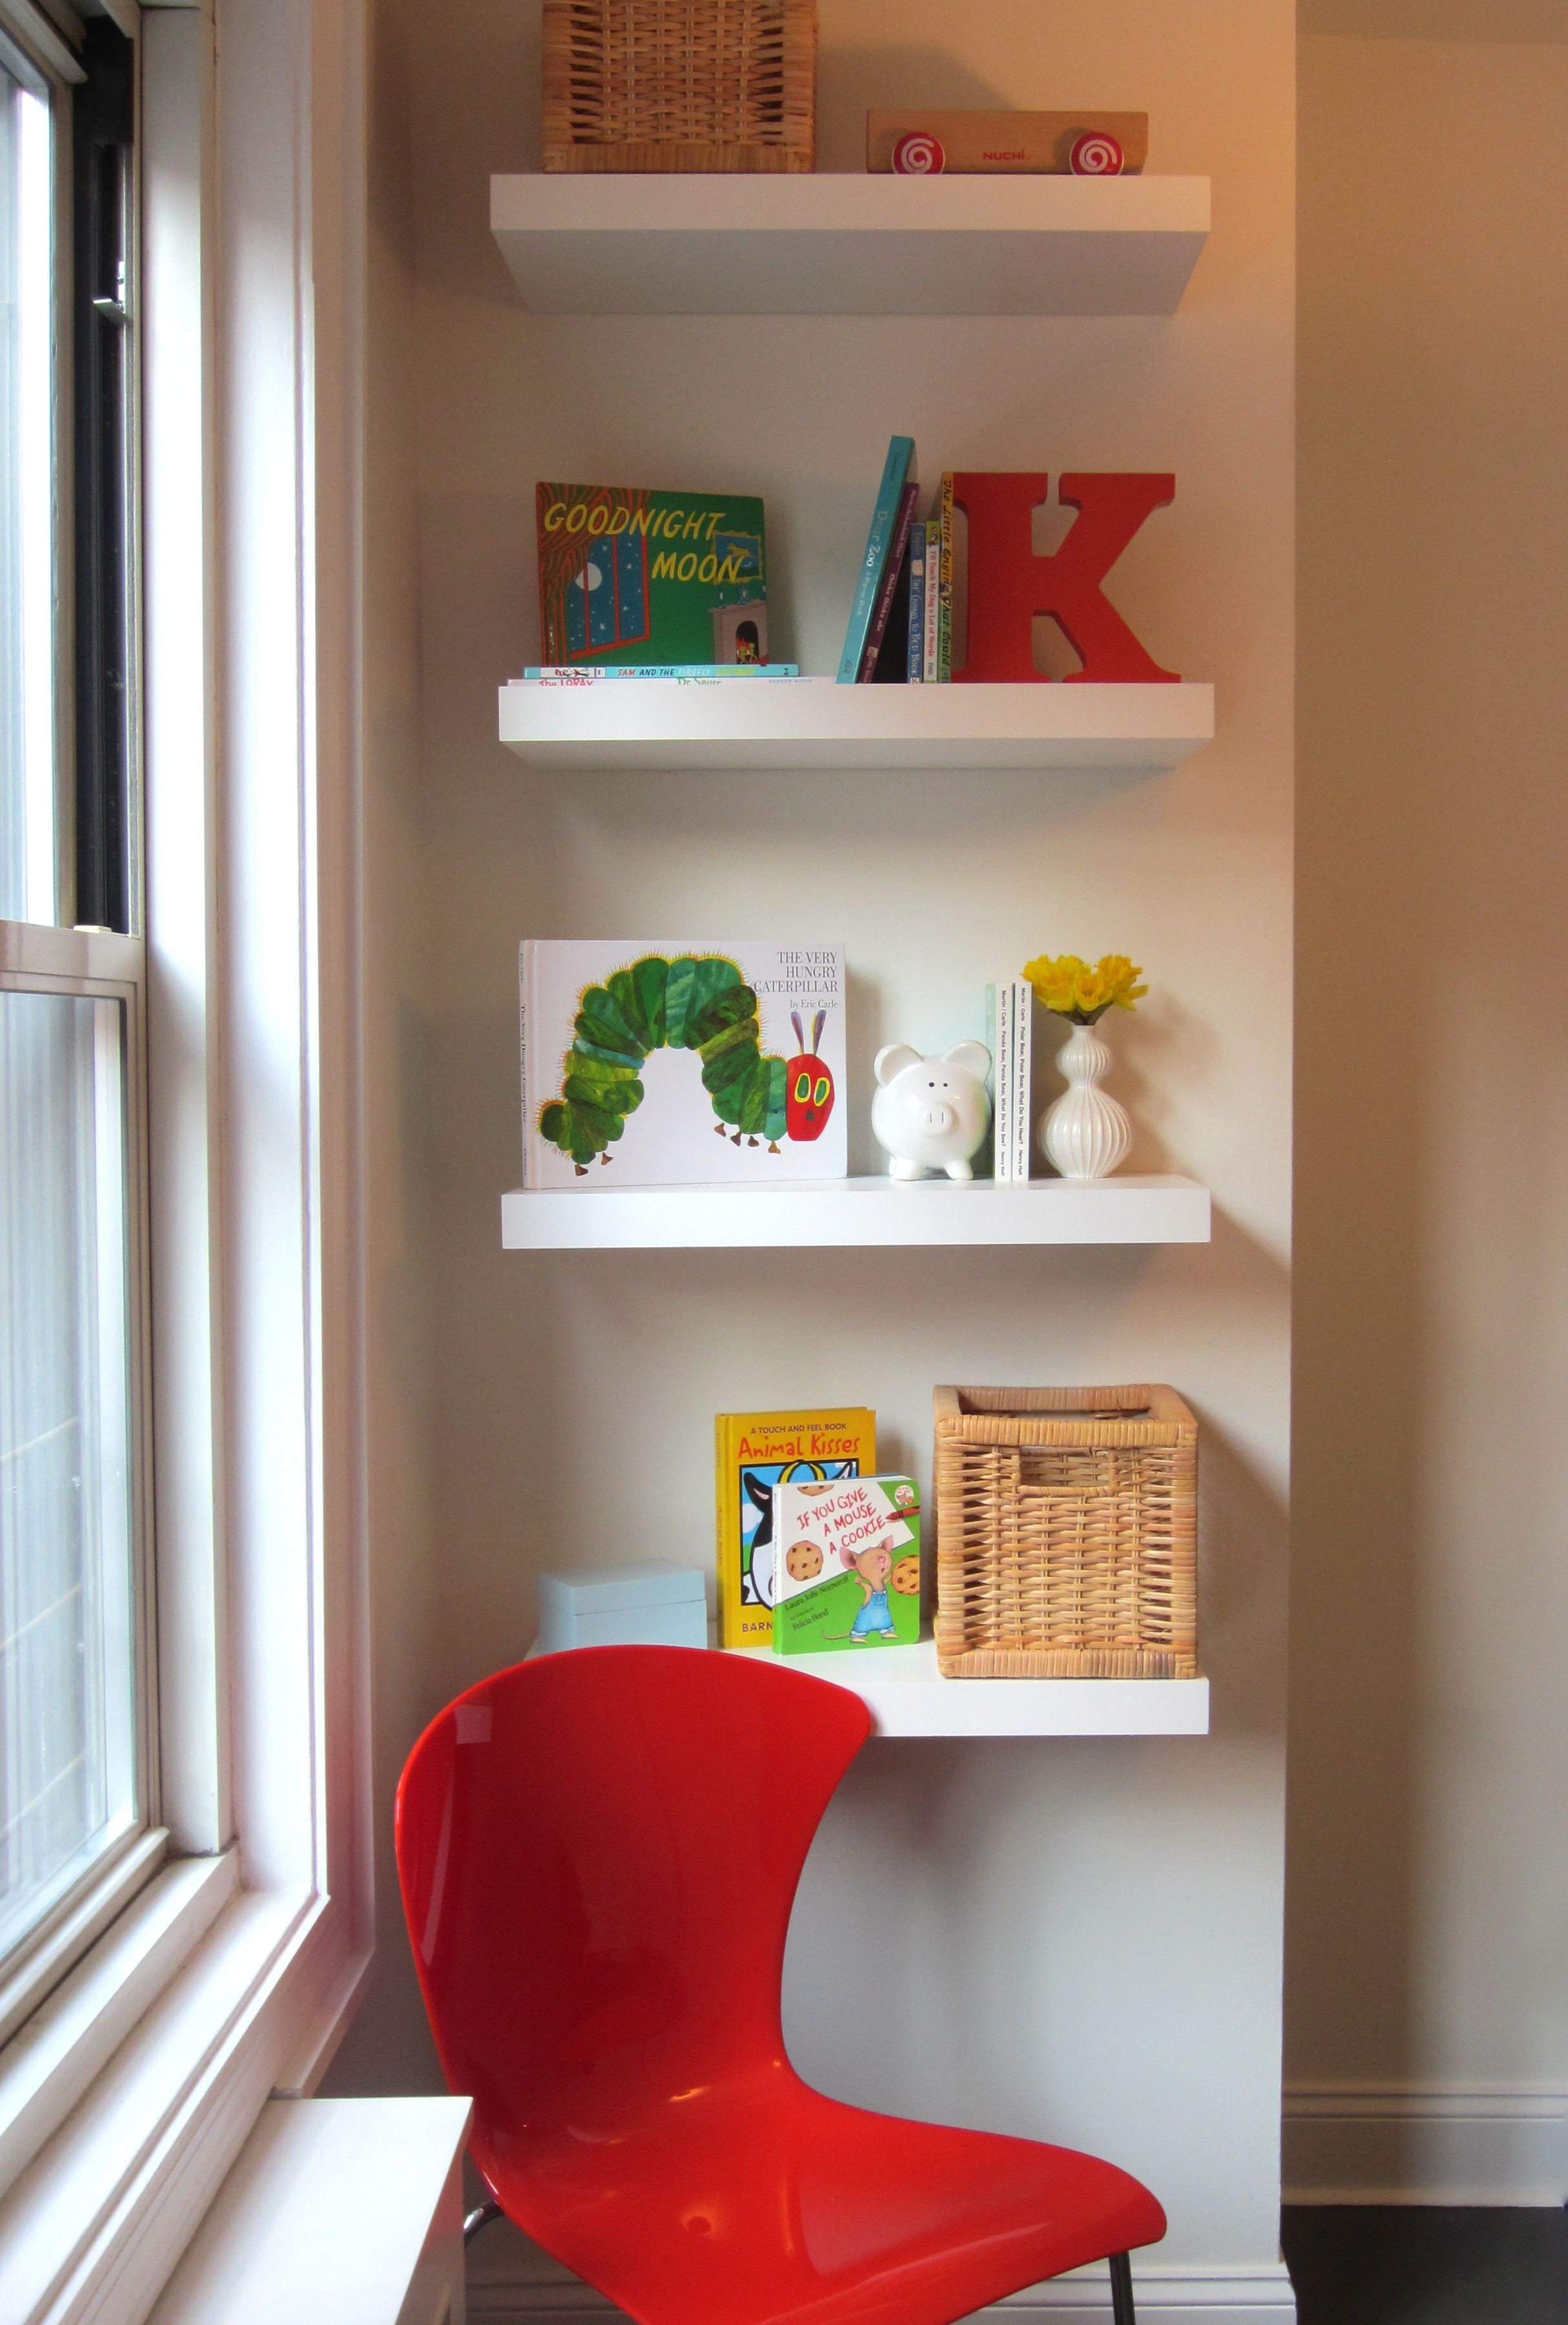 Floating Shelves and an Italian chair make a colorful splash in a childs playroom. Kapito Muller Interiors http://instagram.com/kapitomullerinteriors